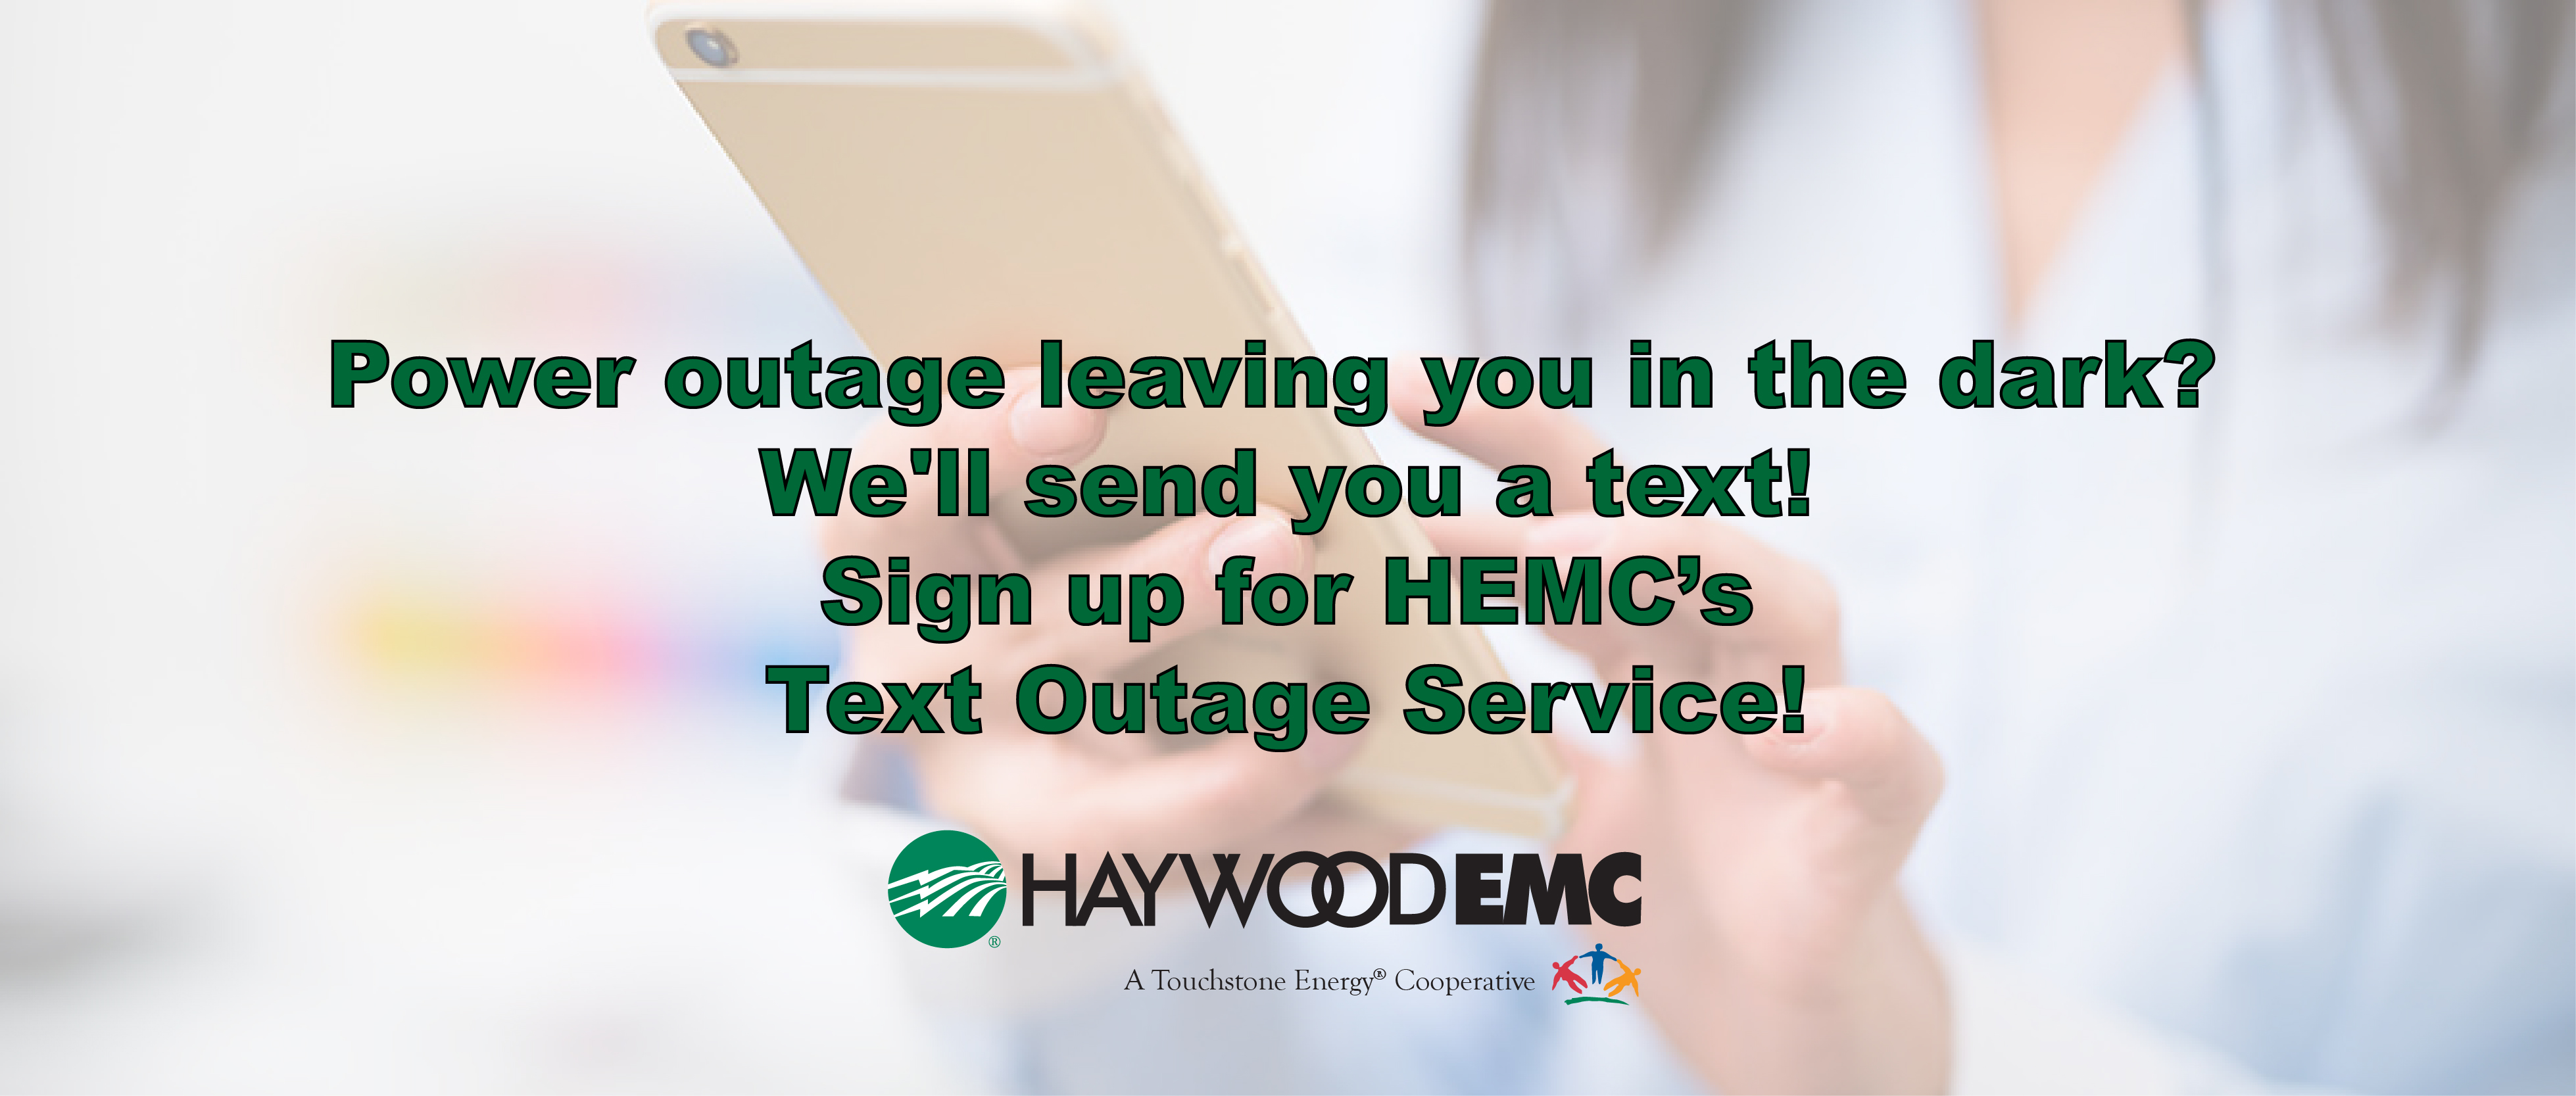 https://www.haywoodemc.com/sites/haywoodemc/files/revslider/image/Text%20Outage%20slide-01.jpg